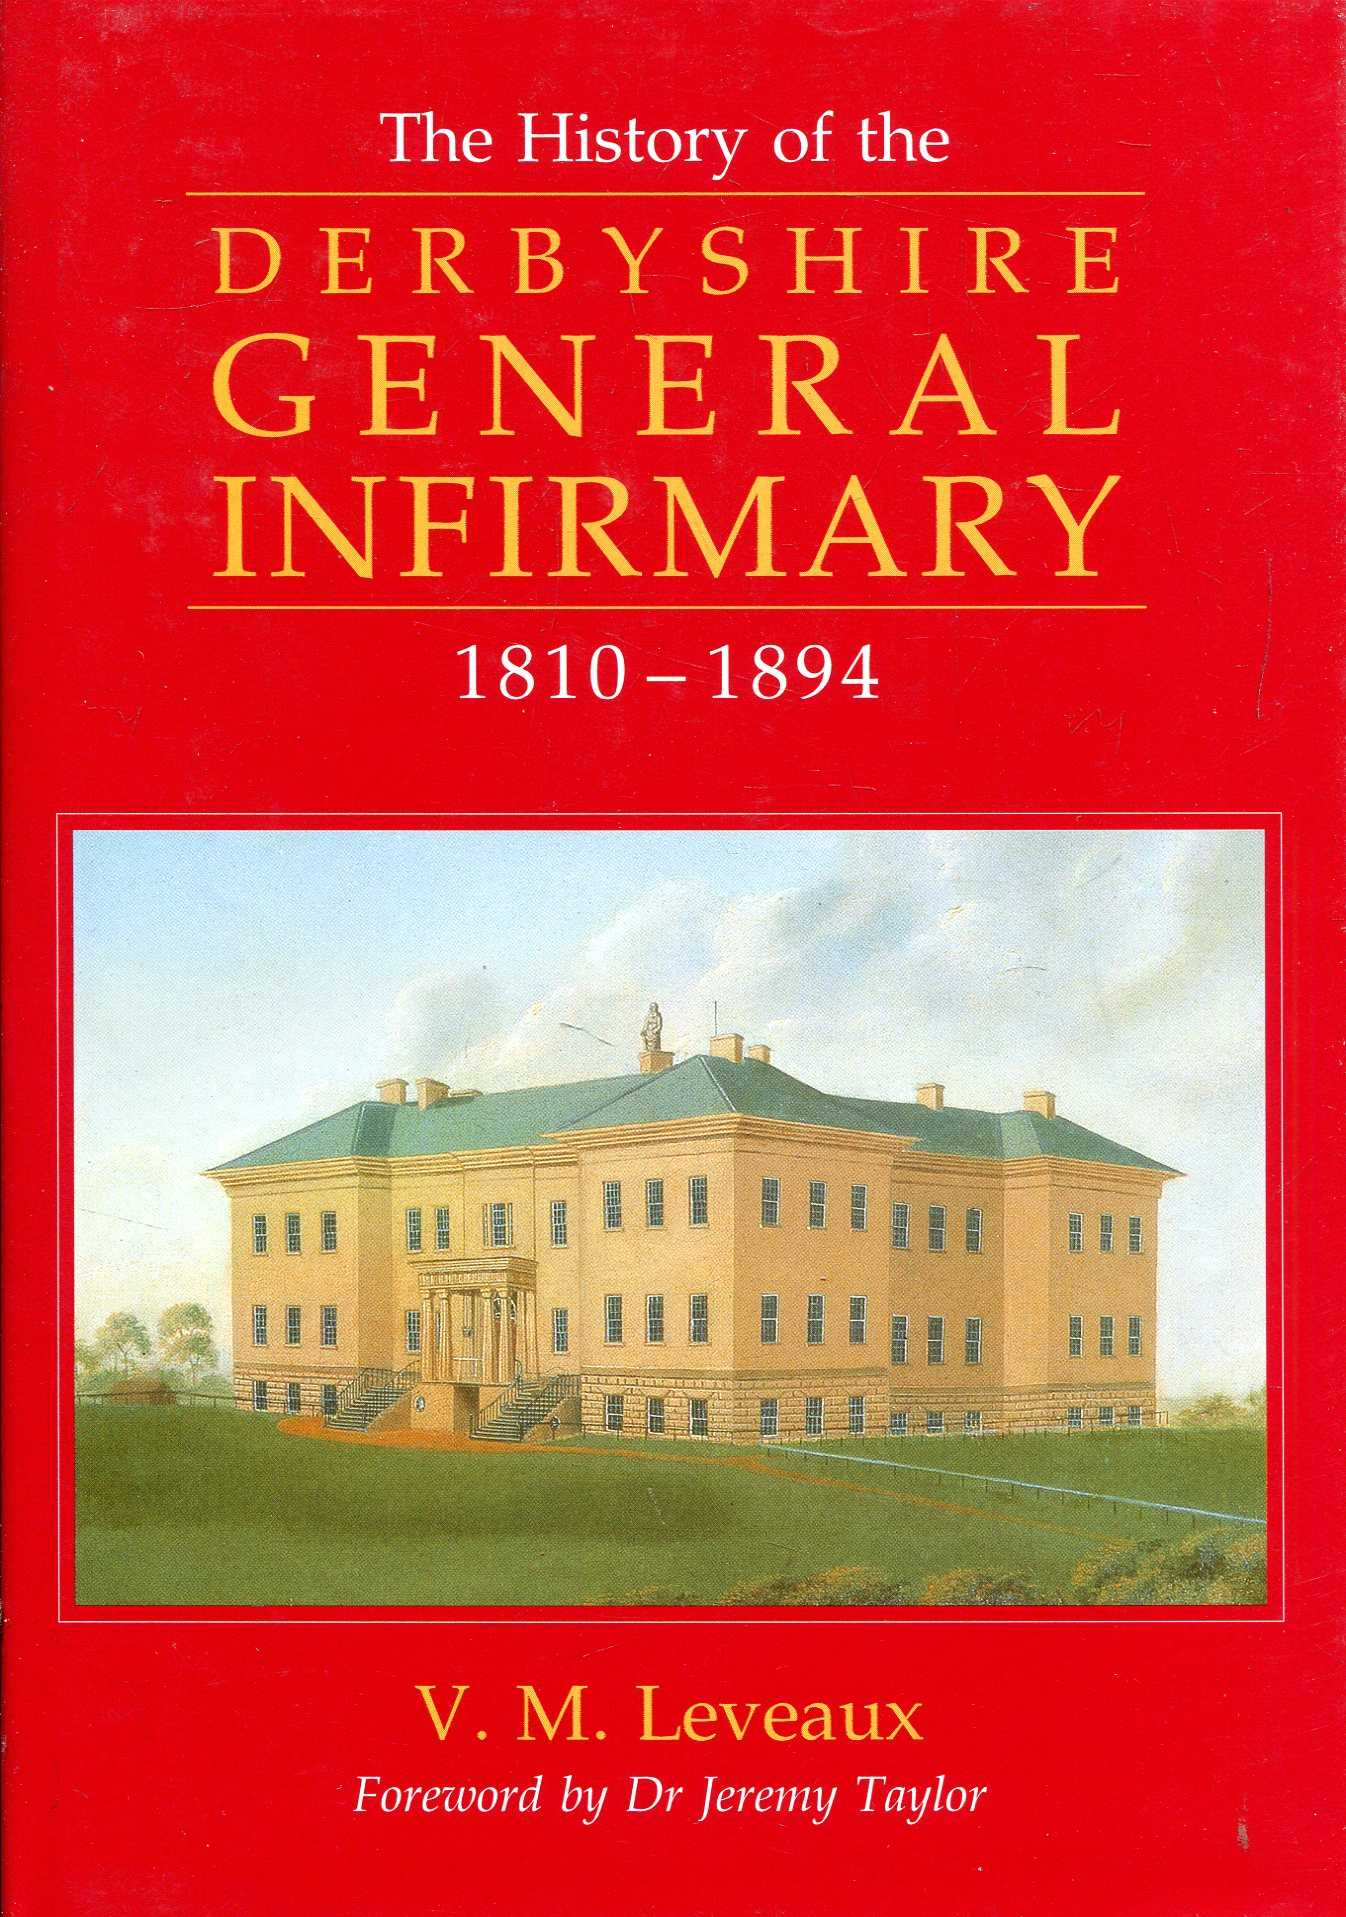 Image for A History of the Derbyshire General Infirmary 1810-1894